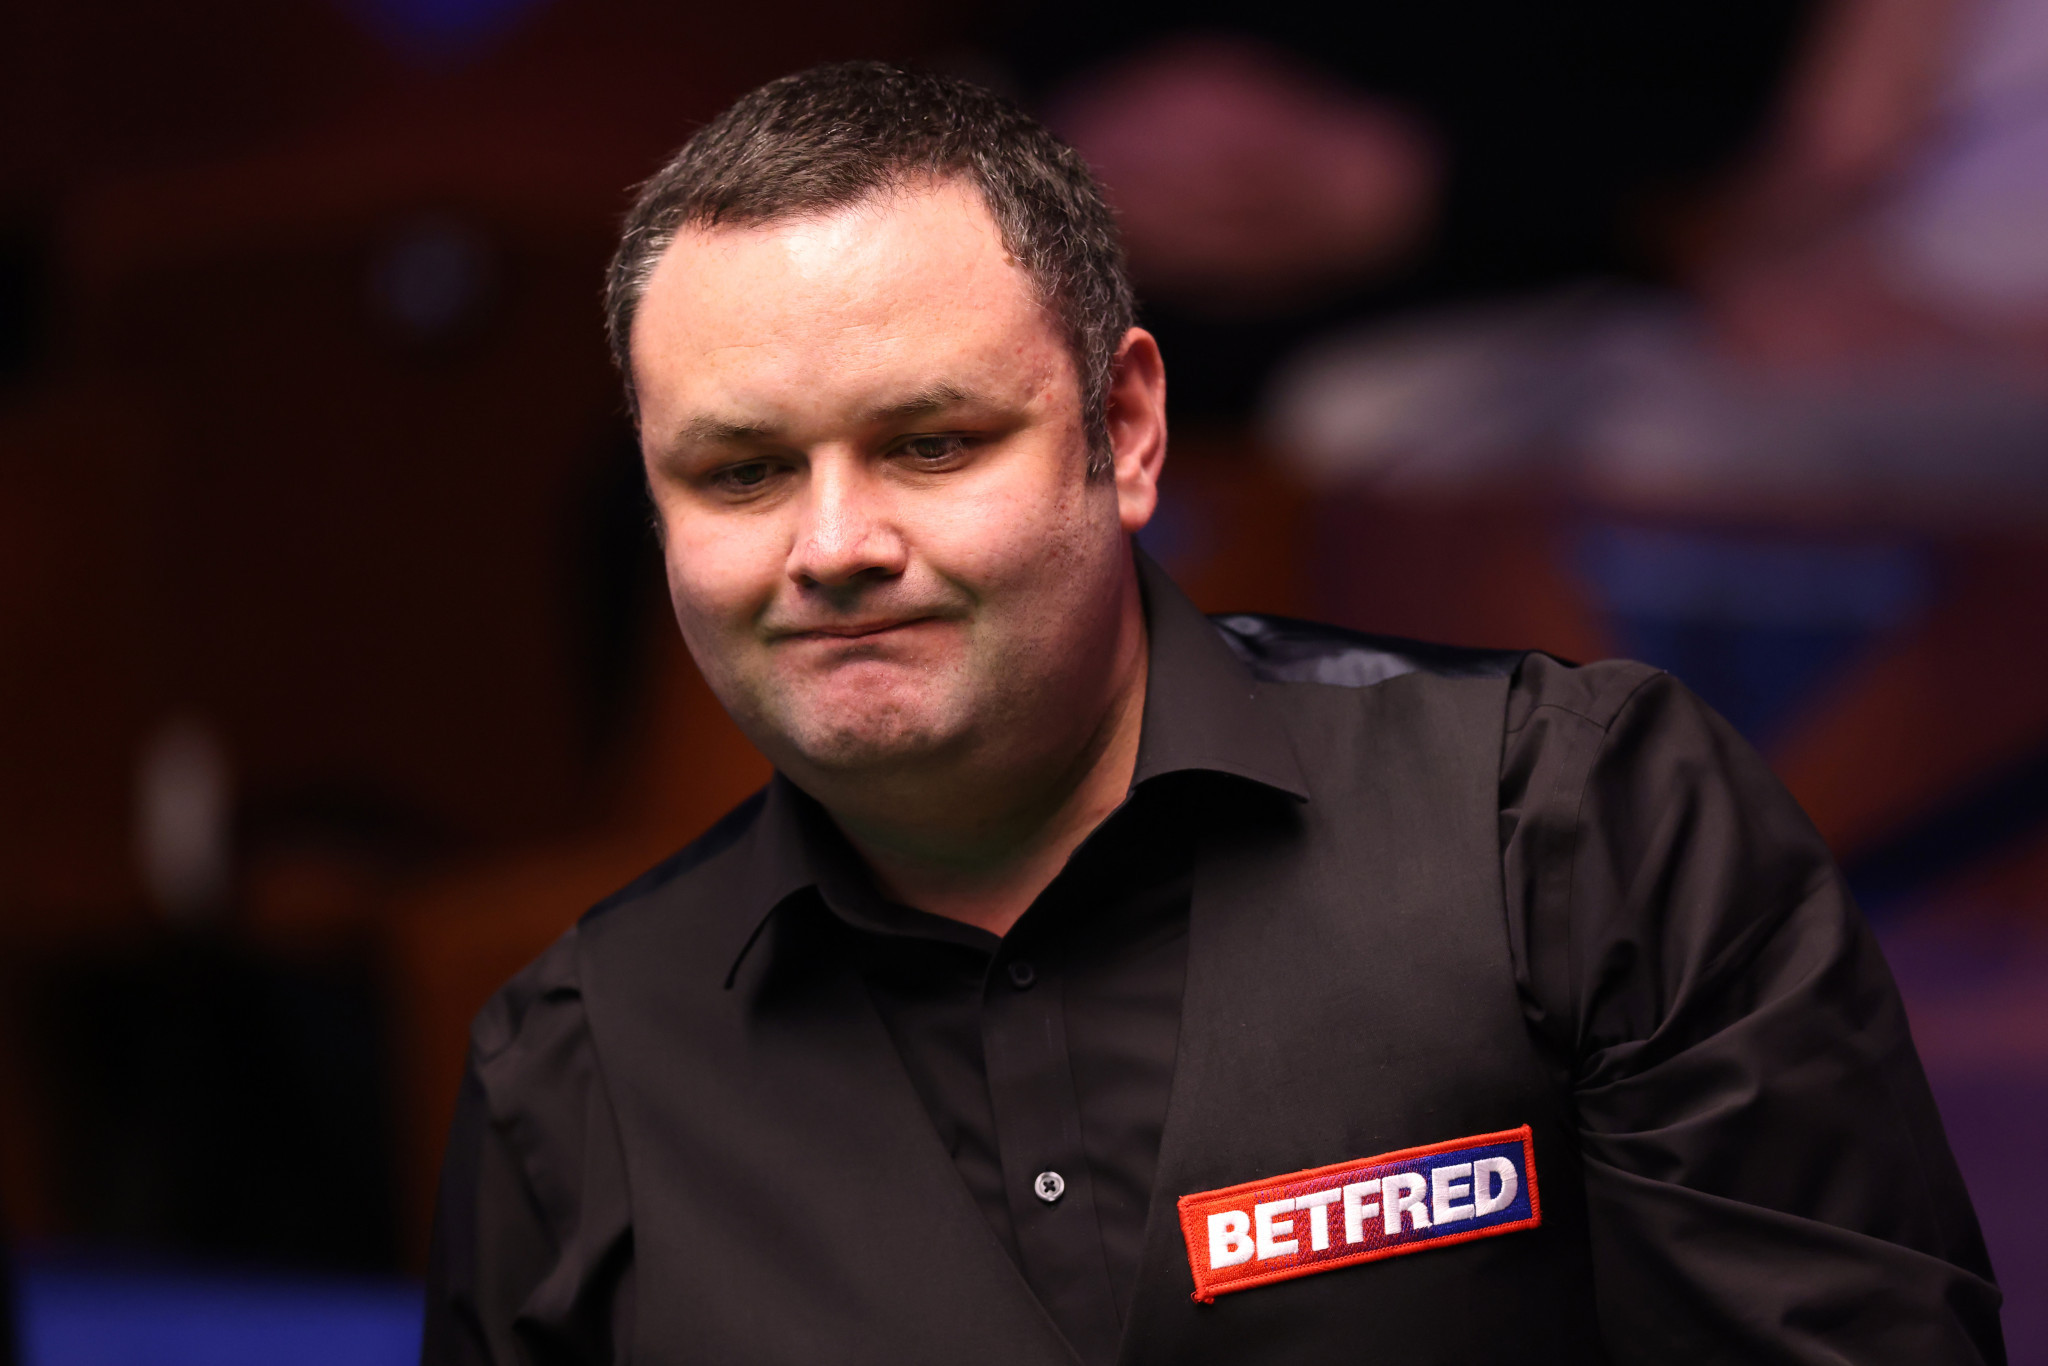 Scotland's Stephen Maguire became the first top 16 player to be eliminated at the World Championship after he was beaten 10-4 by Jamie Jones ©Getty Images